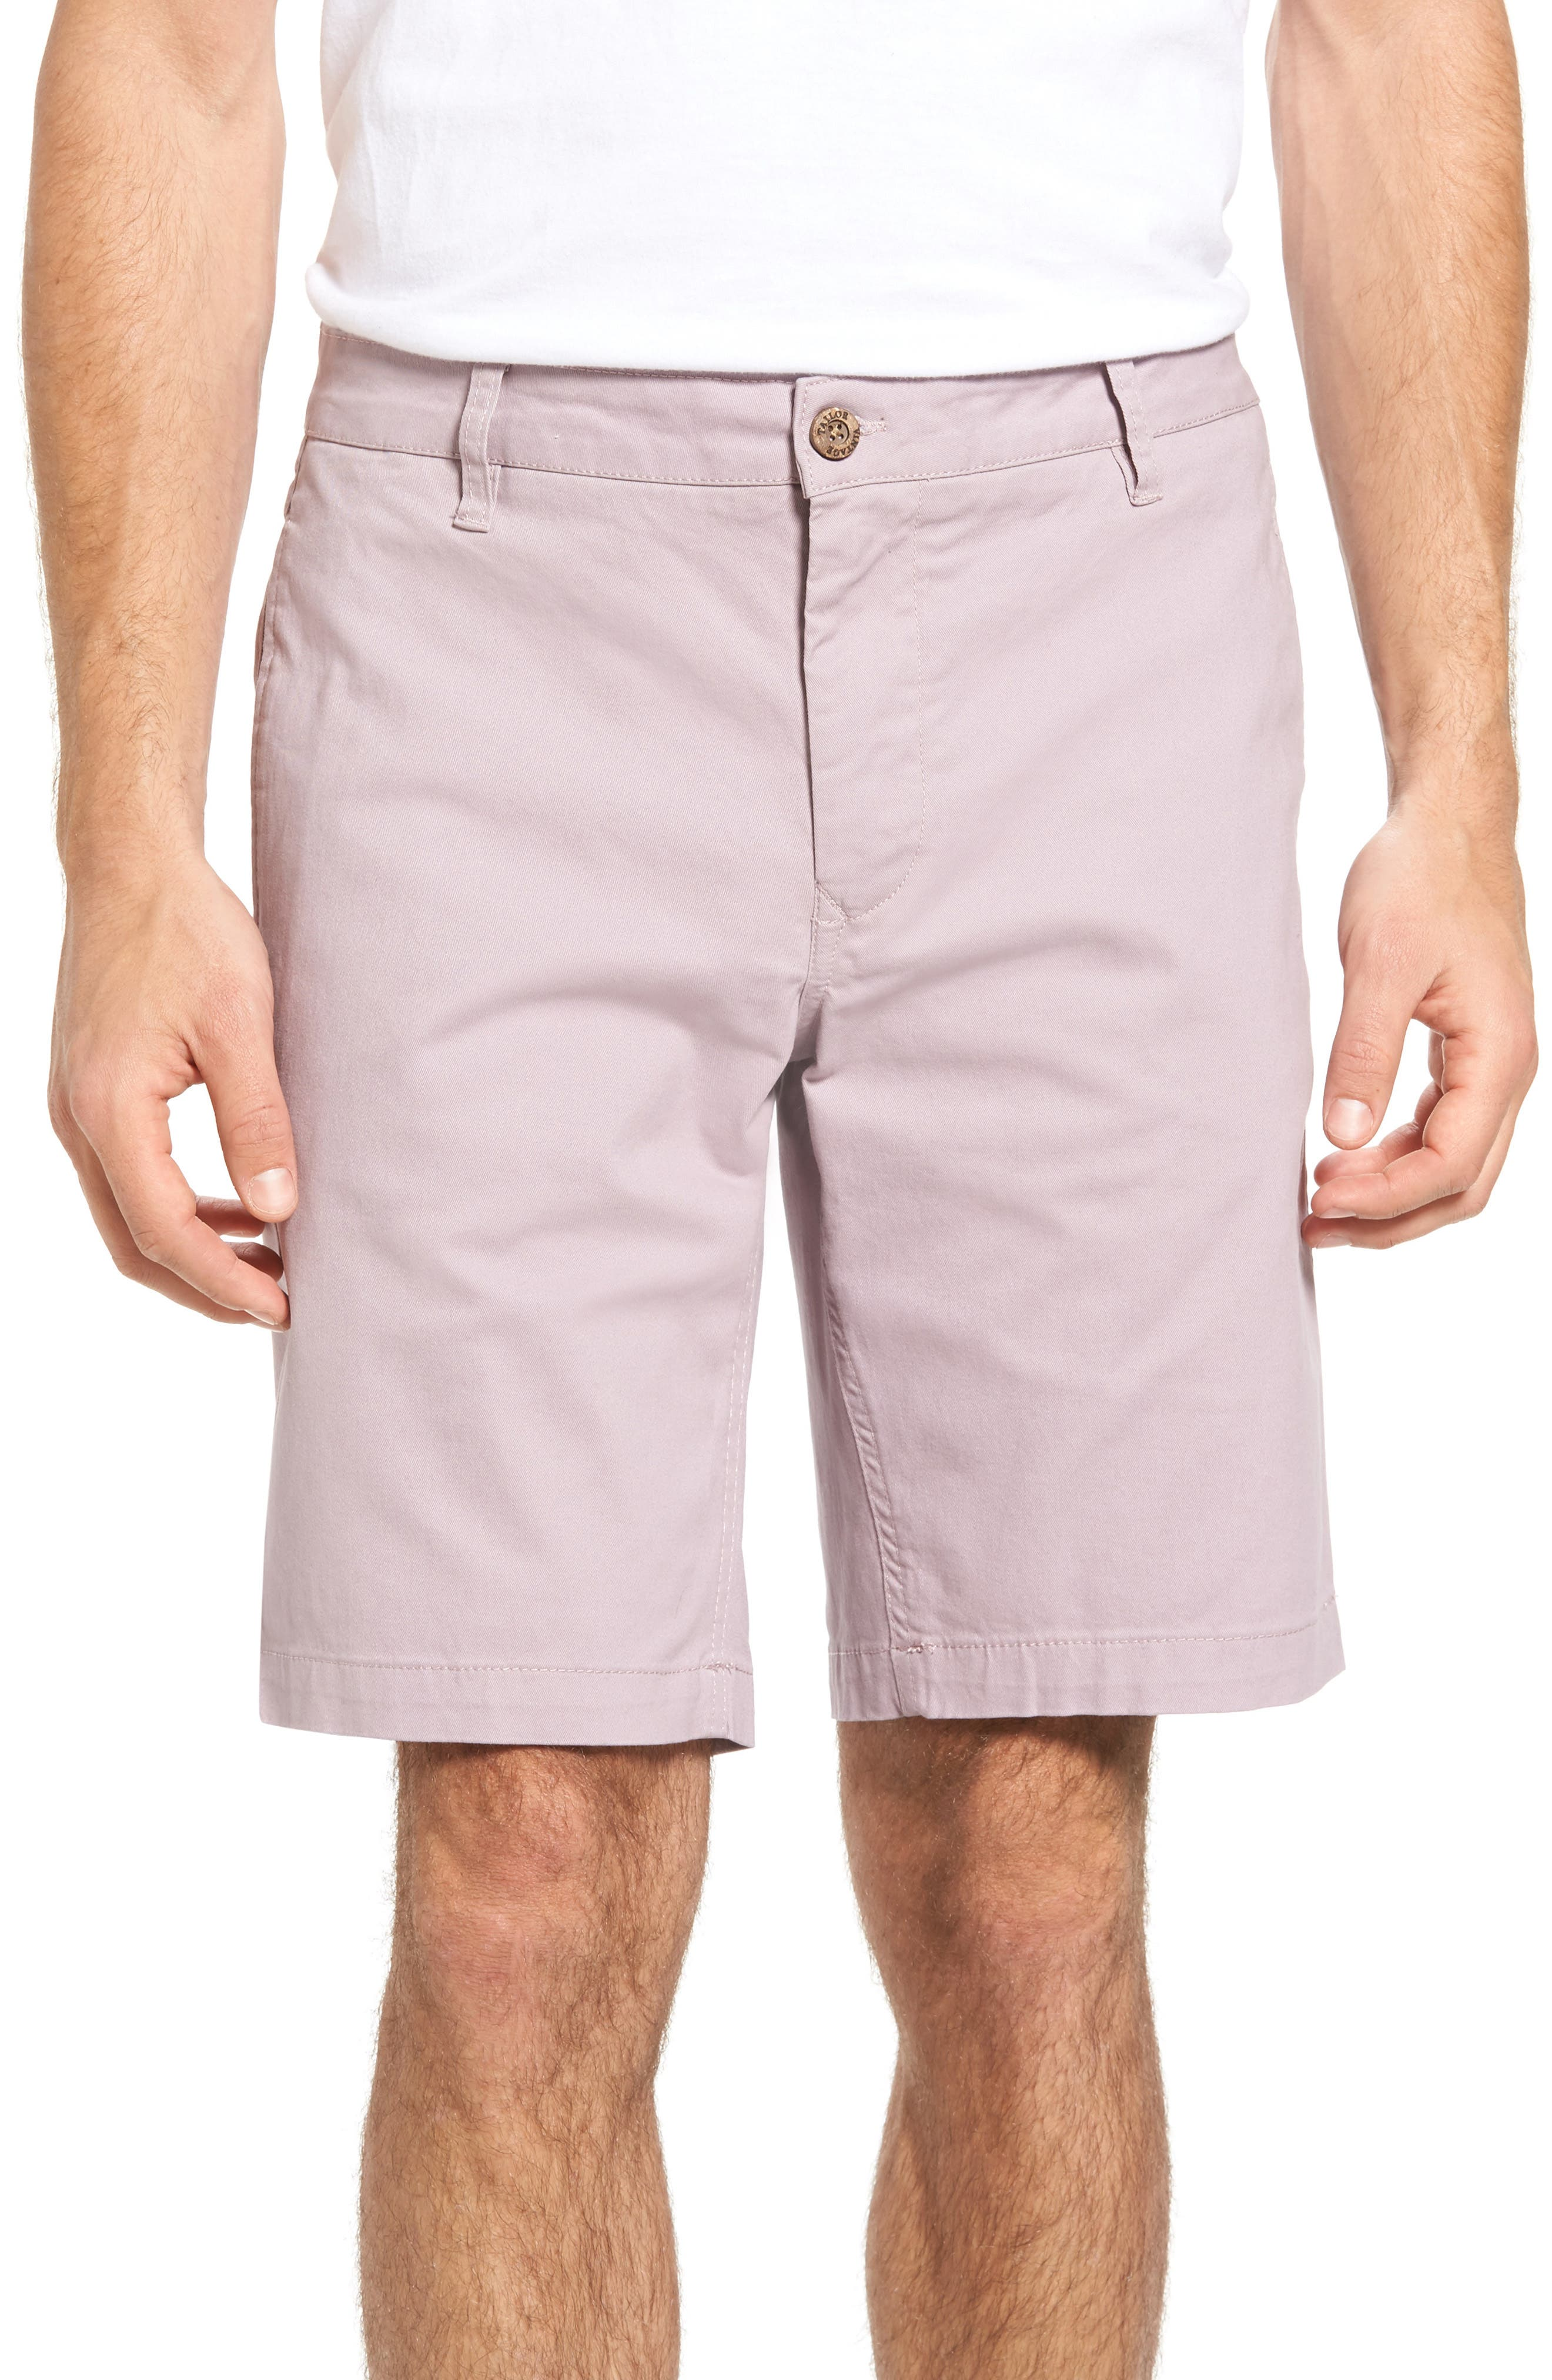 Tailor Vintage Stretch Twill Walking Shorts